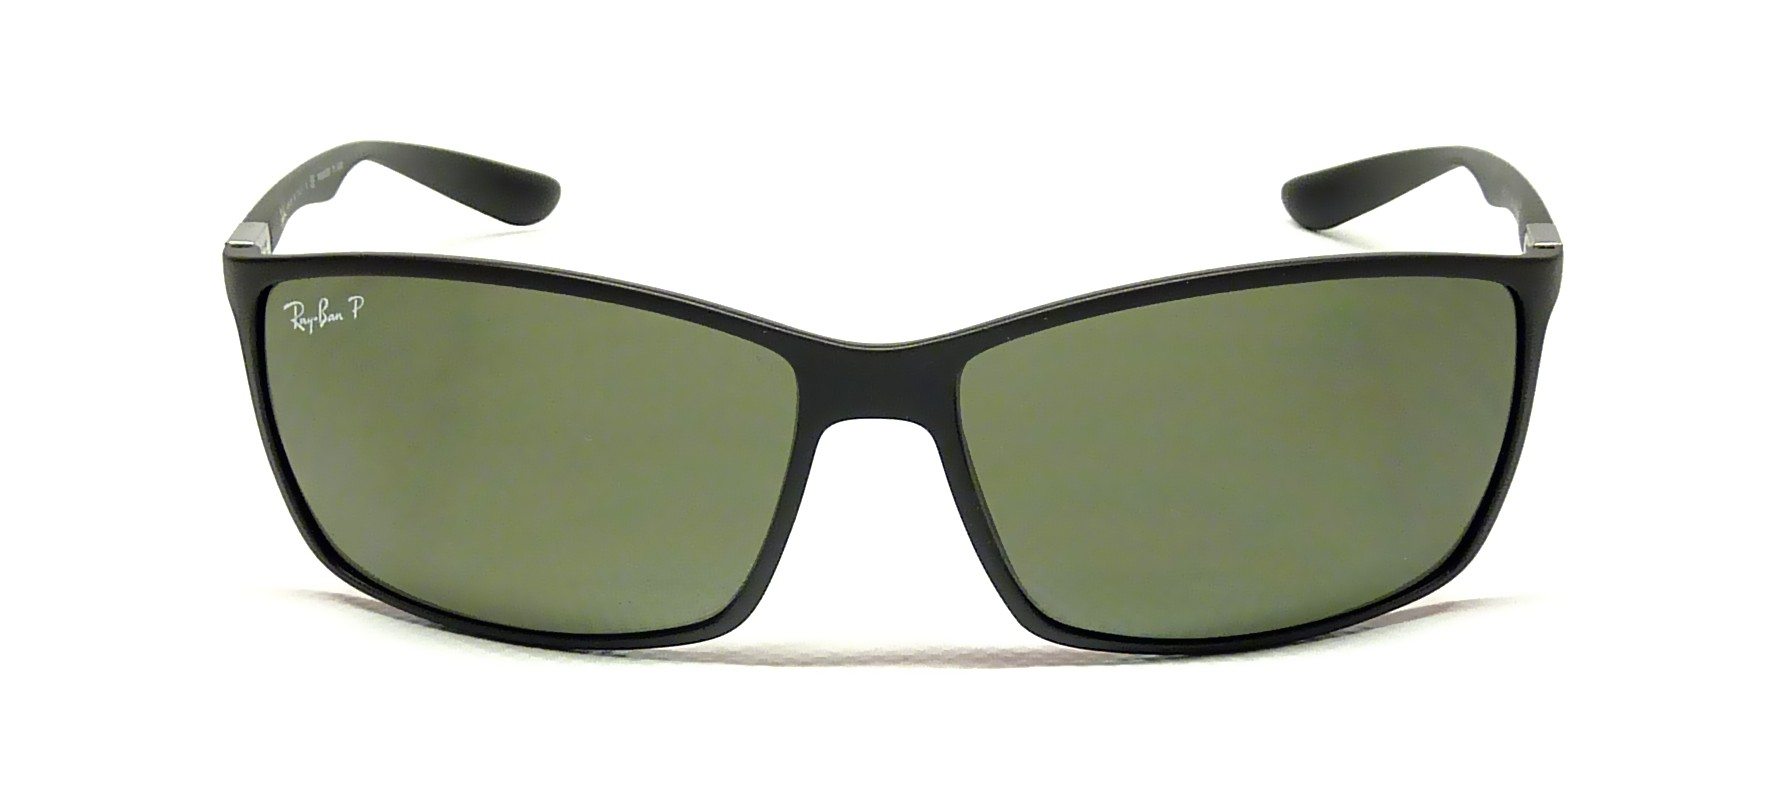 Polarized Sunglasses Rayban  ban tech liteforce black rb4179 601s 9a 62 polarized visiofactory